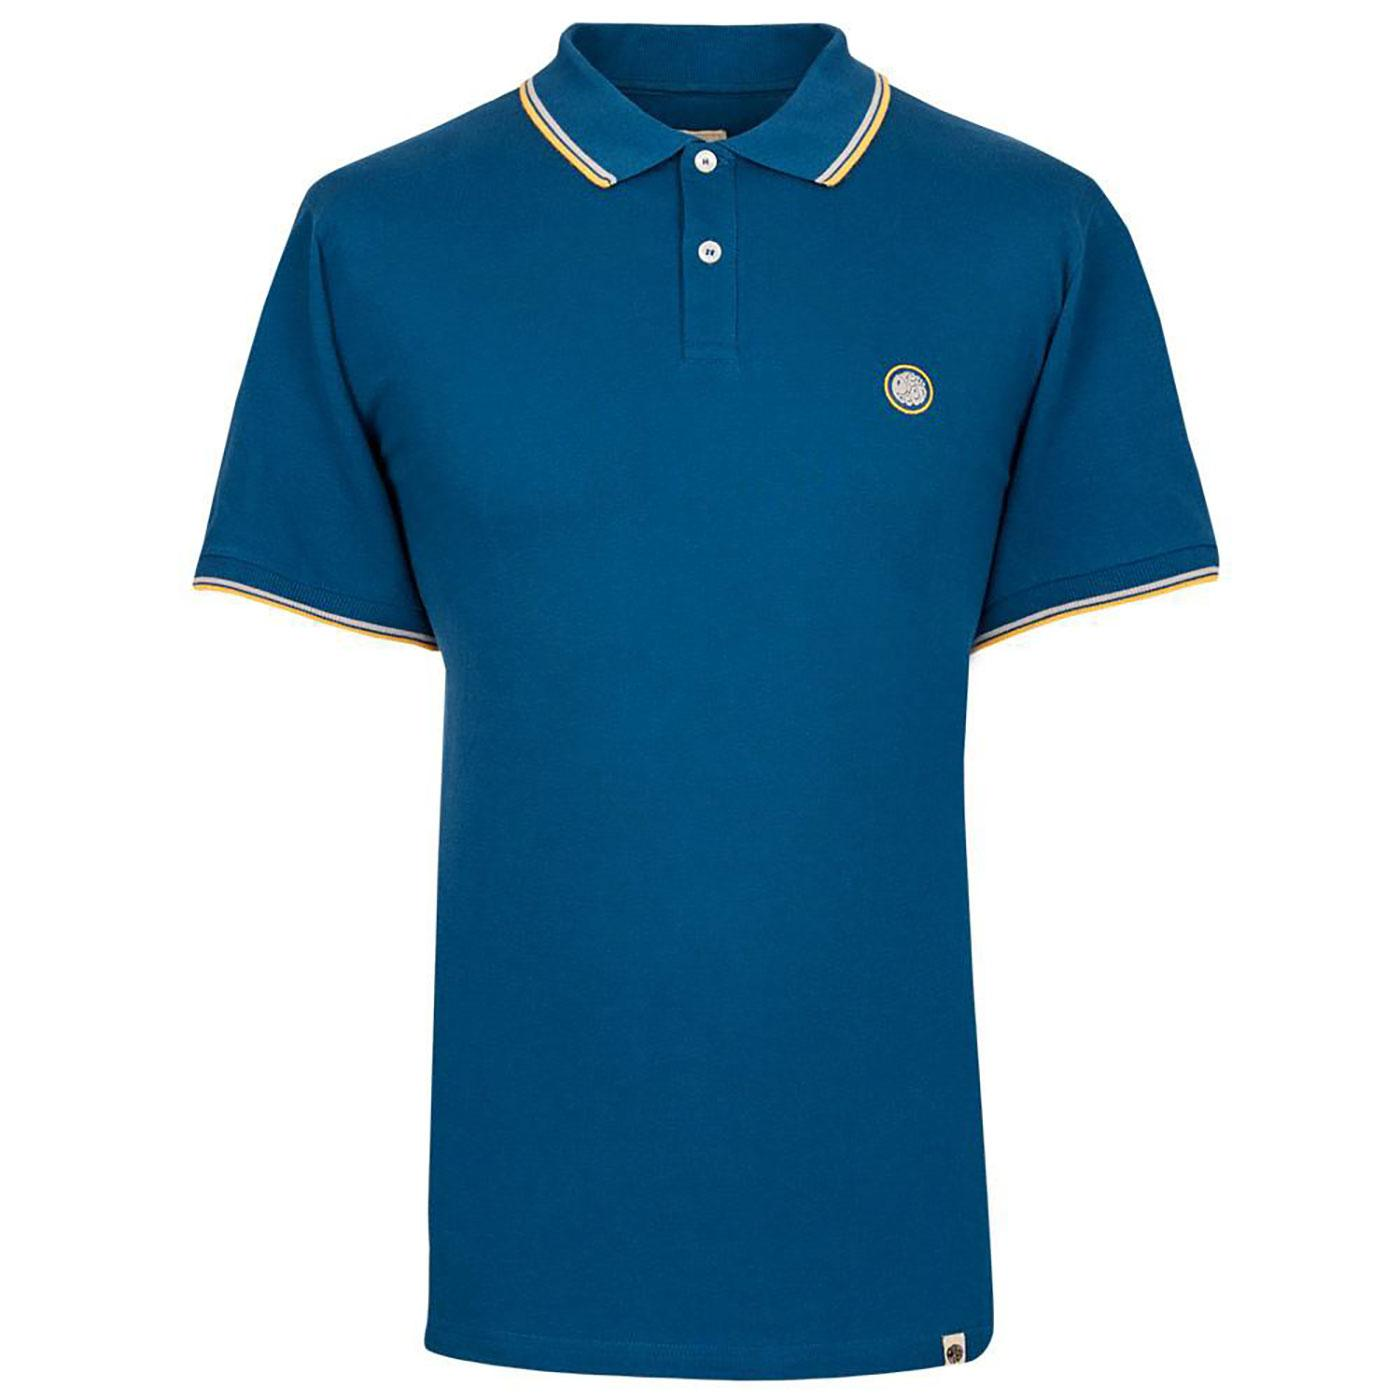 PRETTY GREEN Mod Twin Tipped Pique Polo Shirt DB